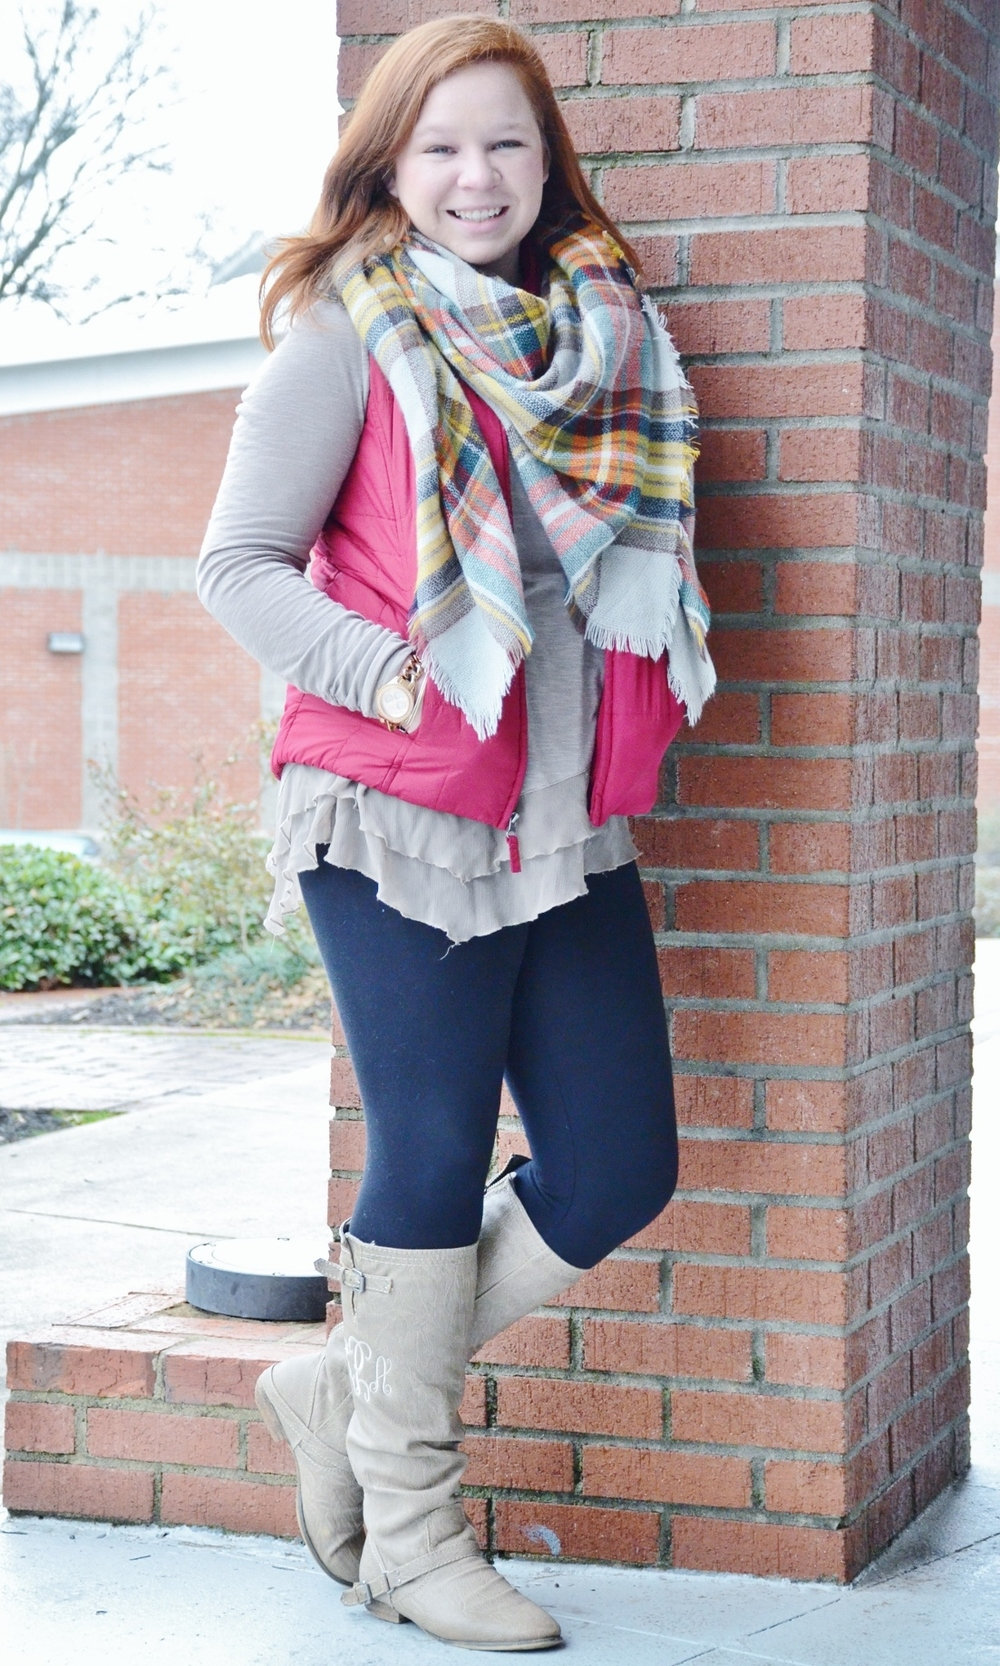 Carson Parnell knows just what to wear when it comes to staying warm. At first glance, it's hard to not notice the multi-colored blanket scarf from Girly Girl Boutique that matches her monogrammed winter boots from Almost Pink. And to put the look altogether, her long-sleeved shirt comes from Cato's.